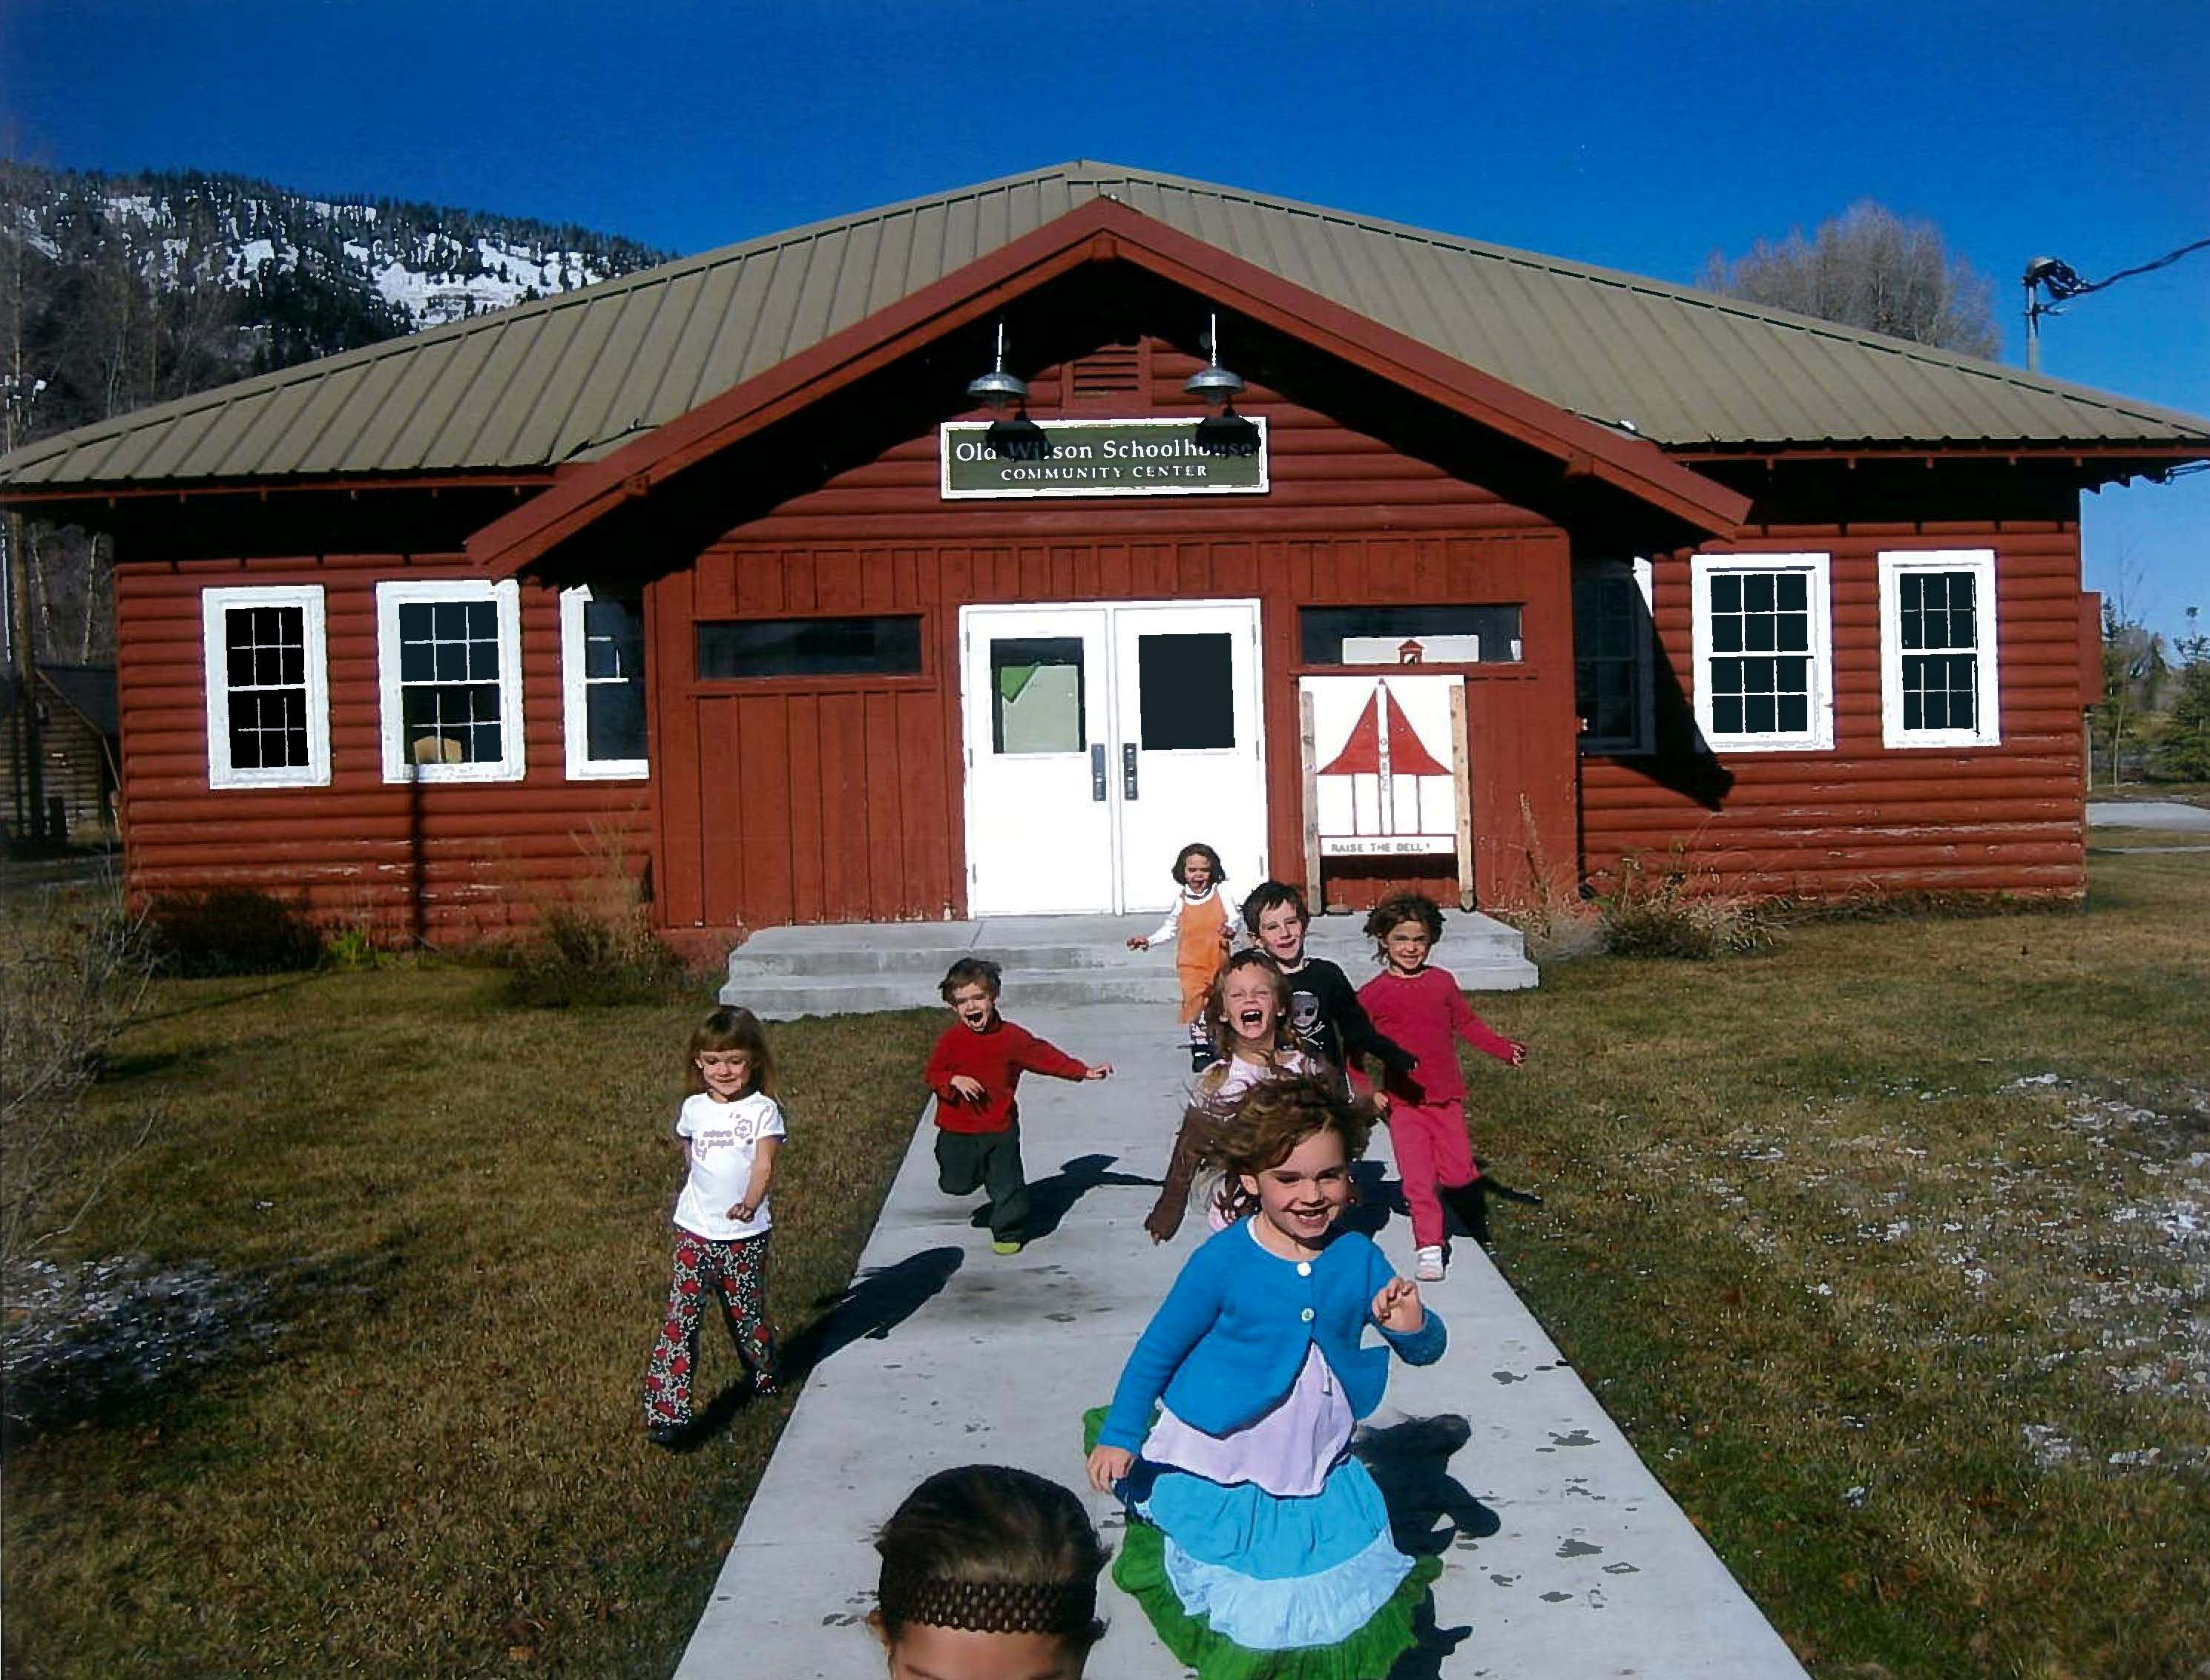 Young visitors to the historic Old Wilson School House Community Center, which dates from 1930.